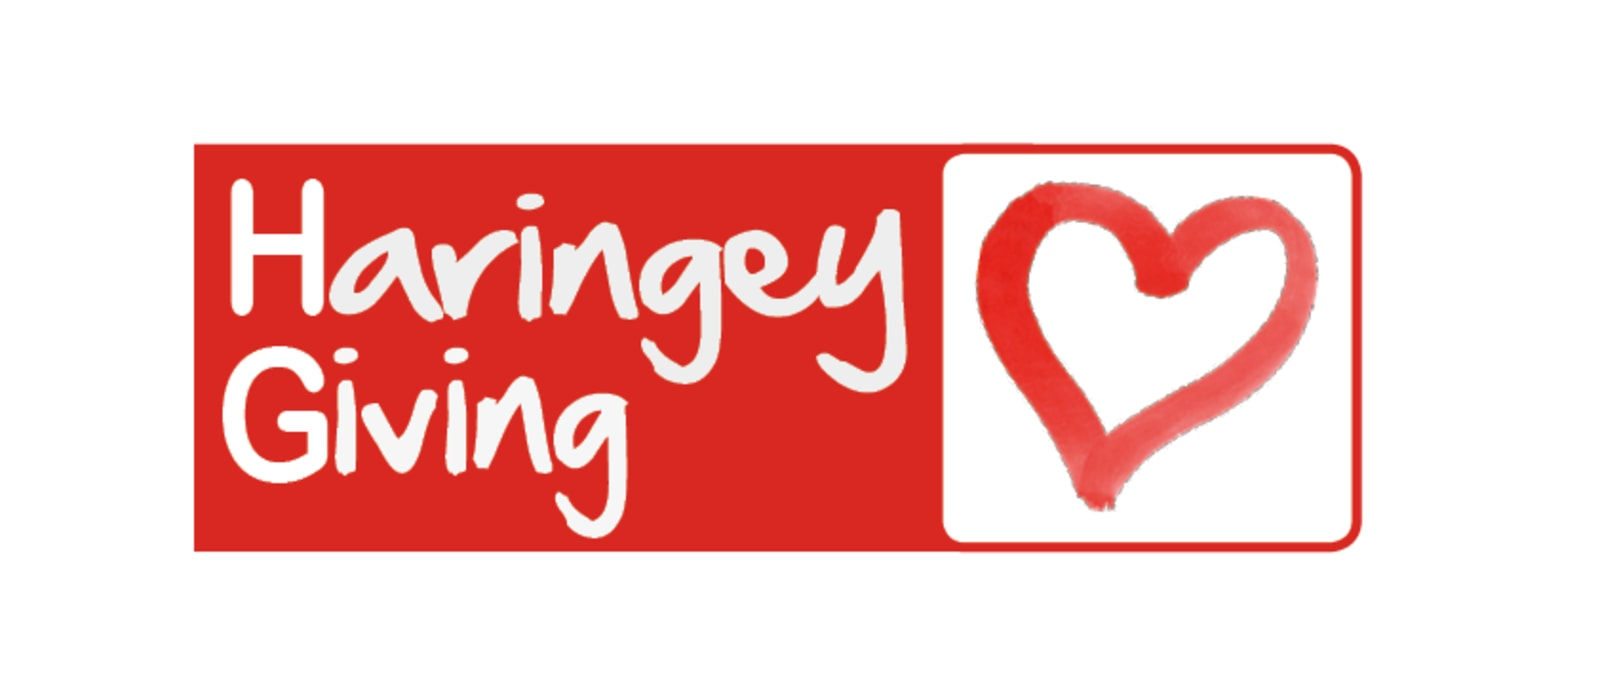 Grants Administration Officer - Haringey Giving (Part Time)